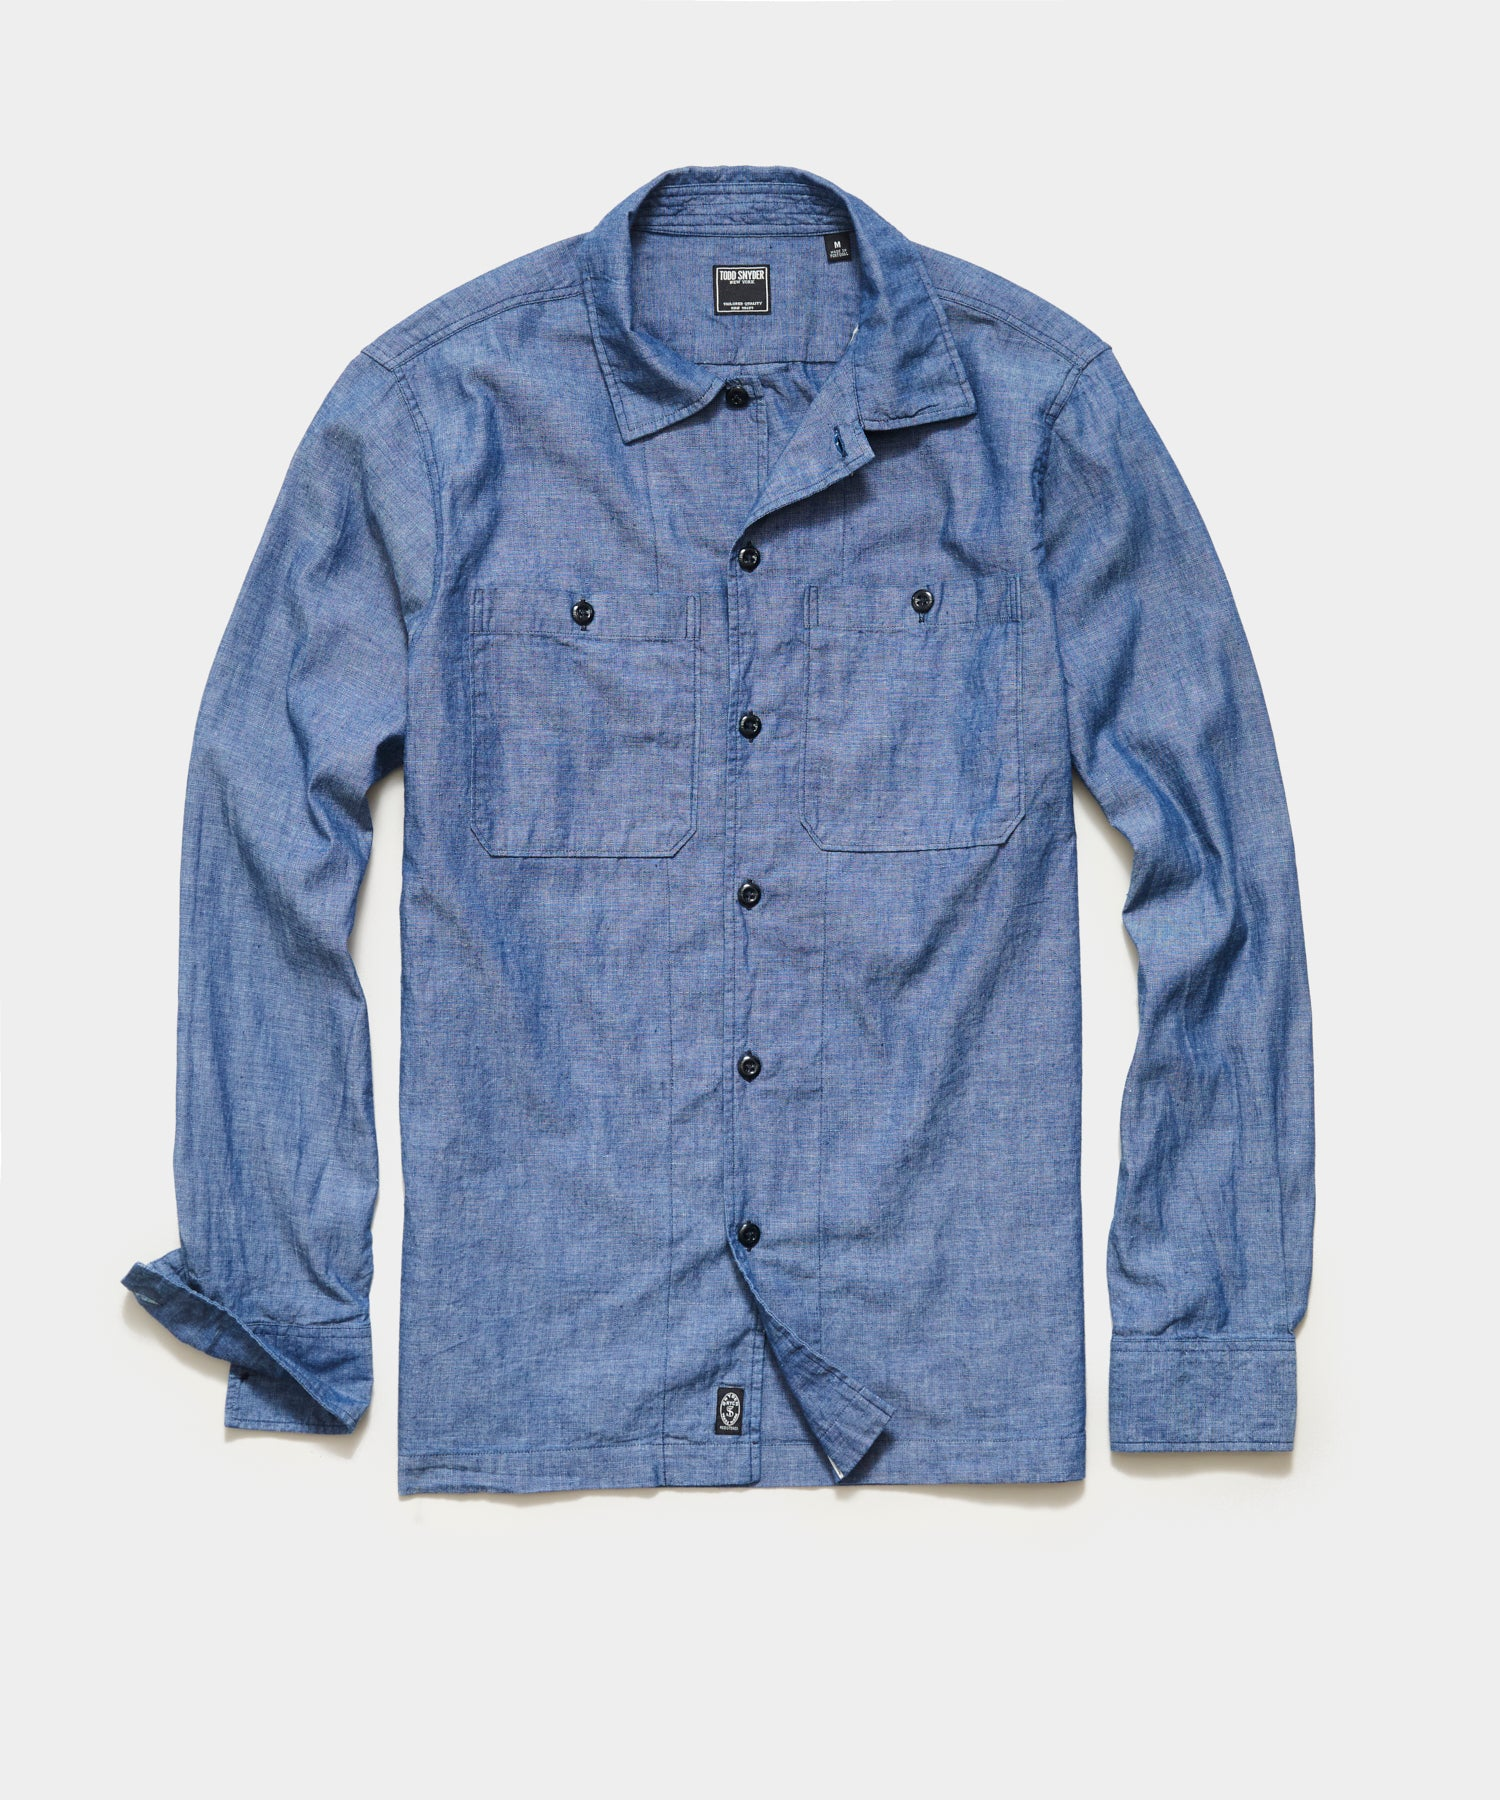 Japanese Selvedge Chambray Recruit Shirt in Indigo